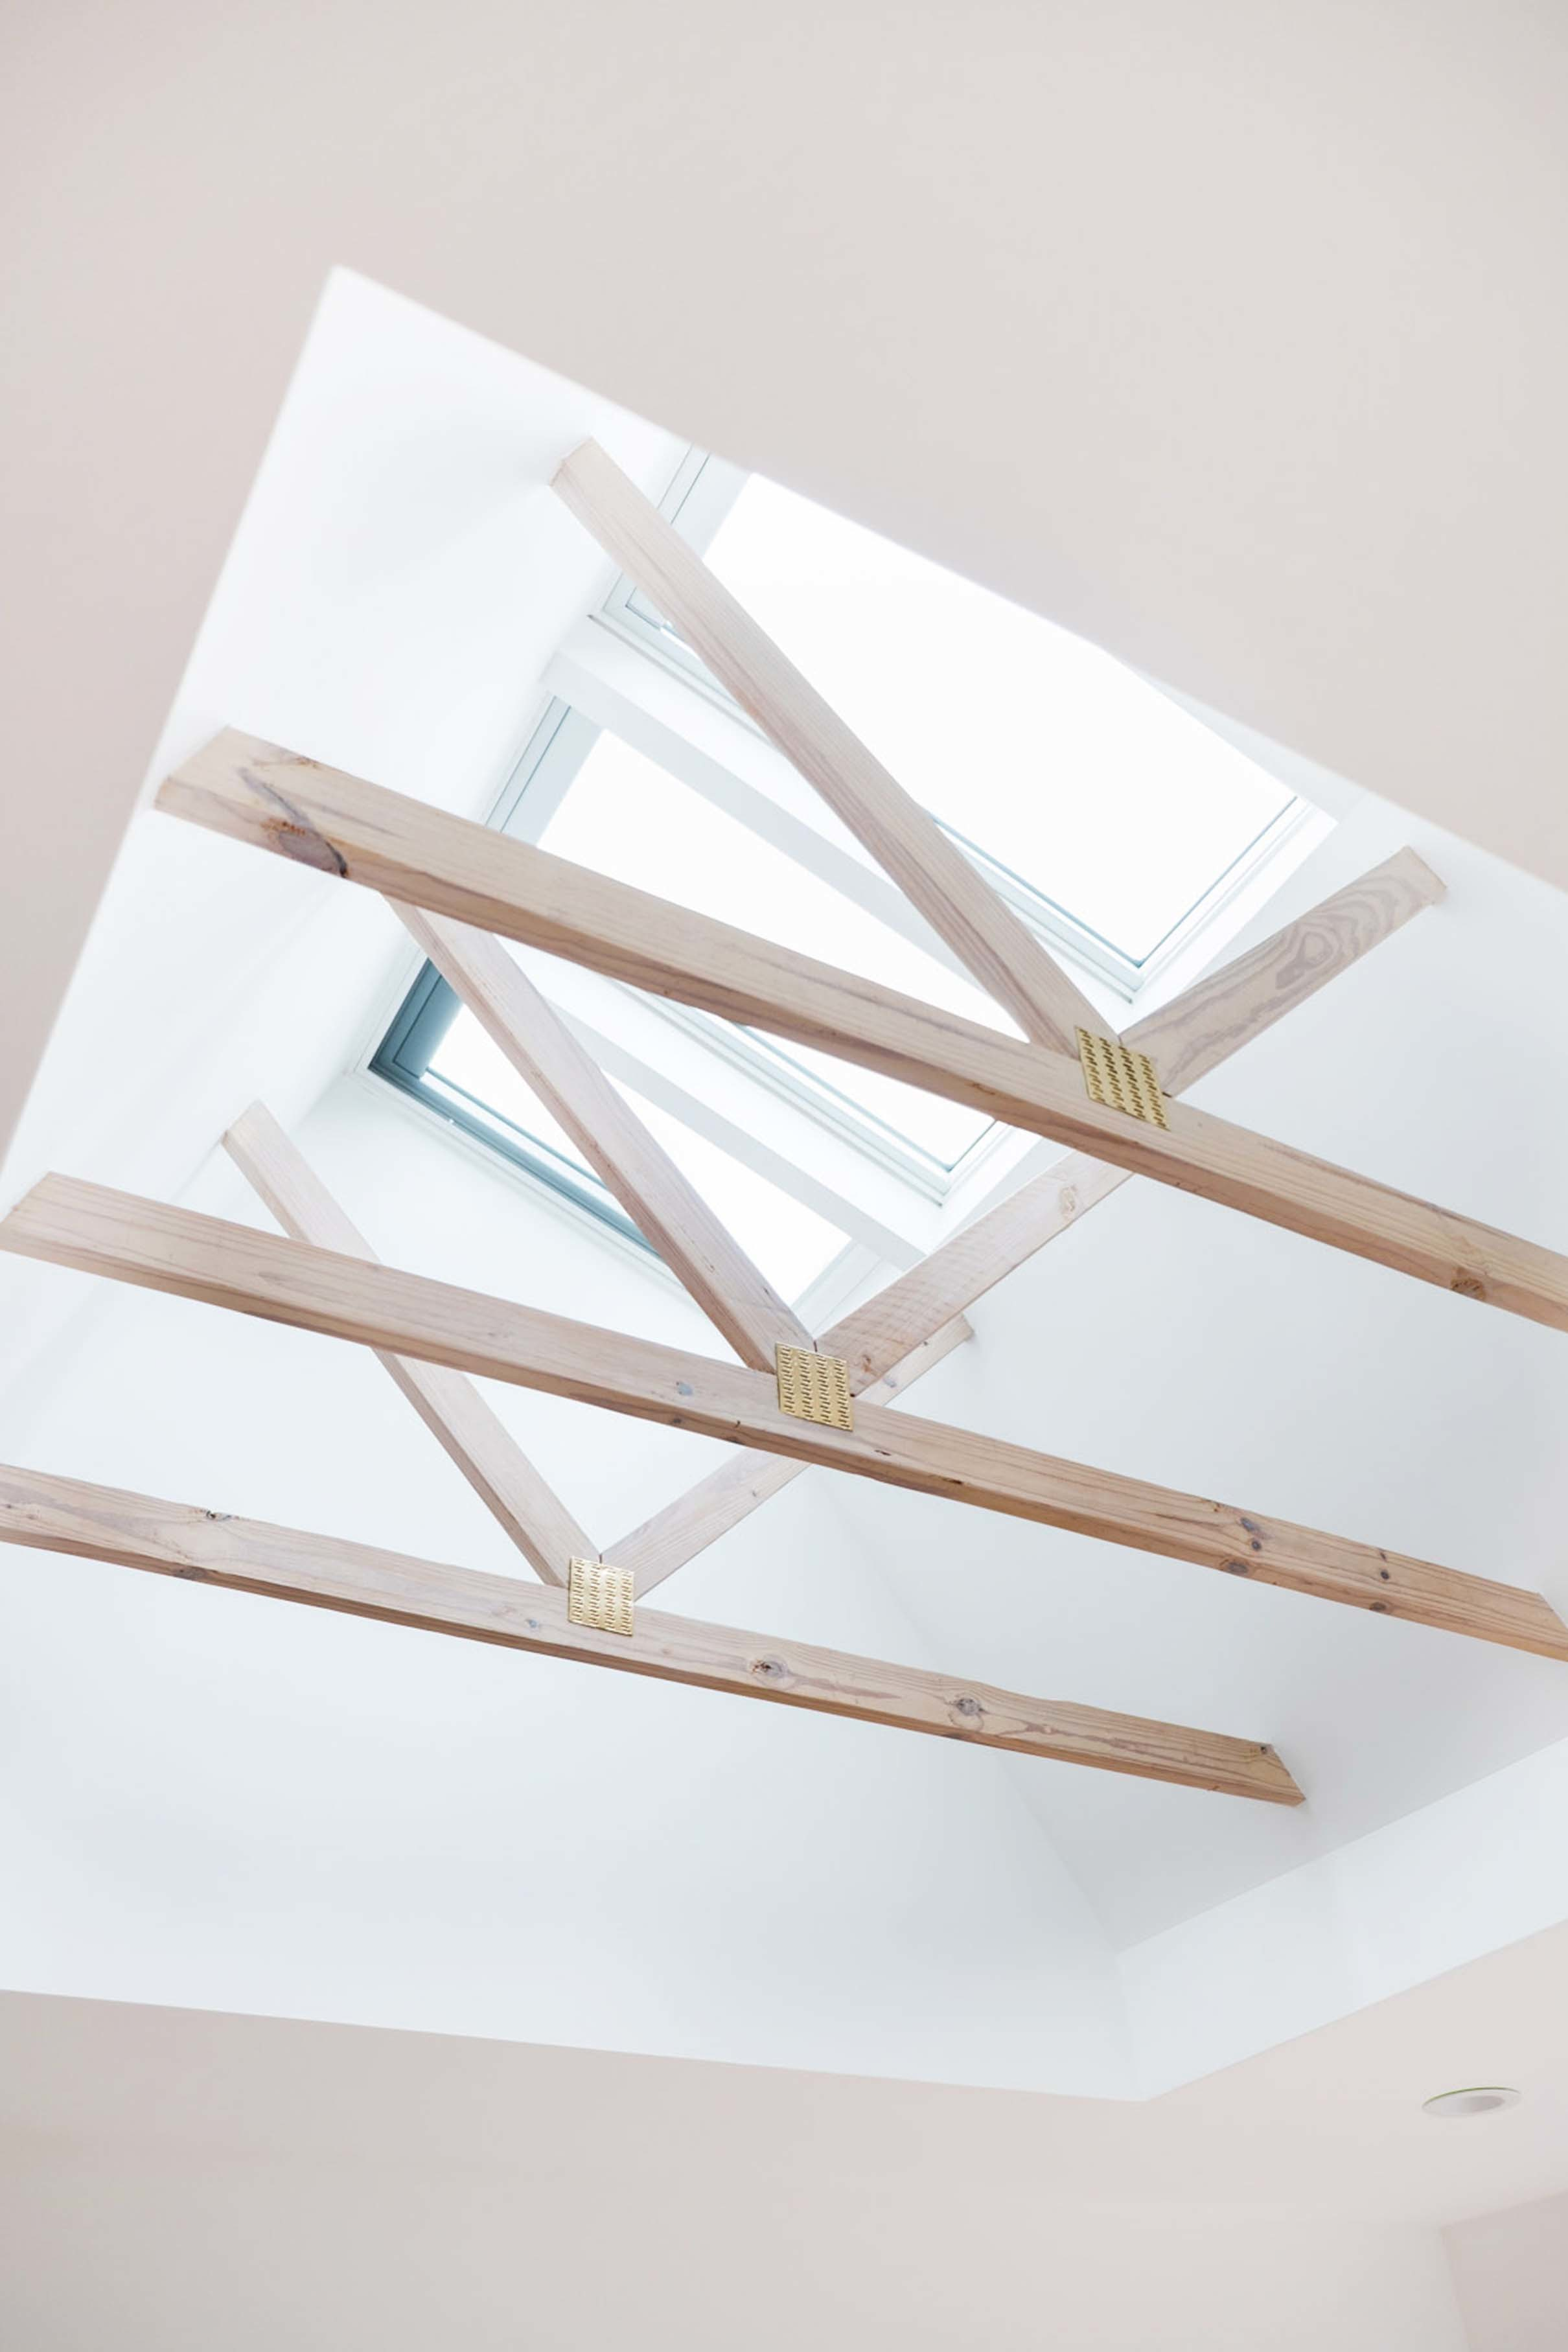 Skylights combi flashed exposed trusses